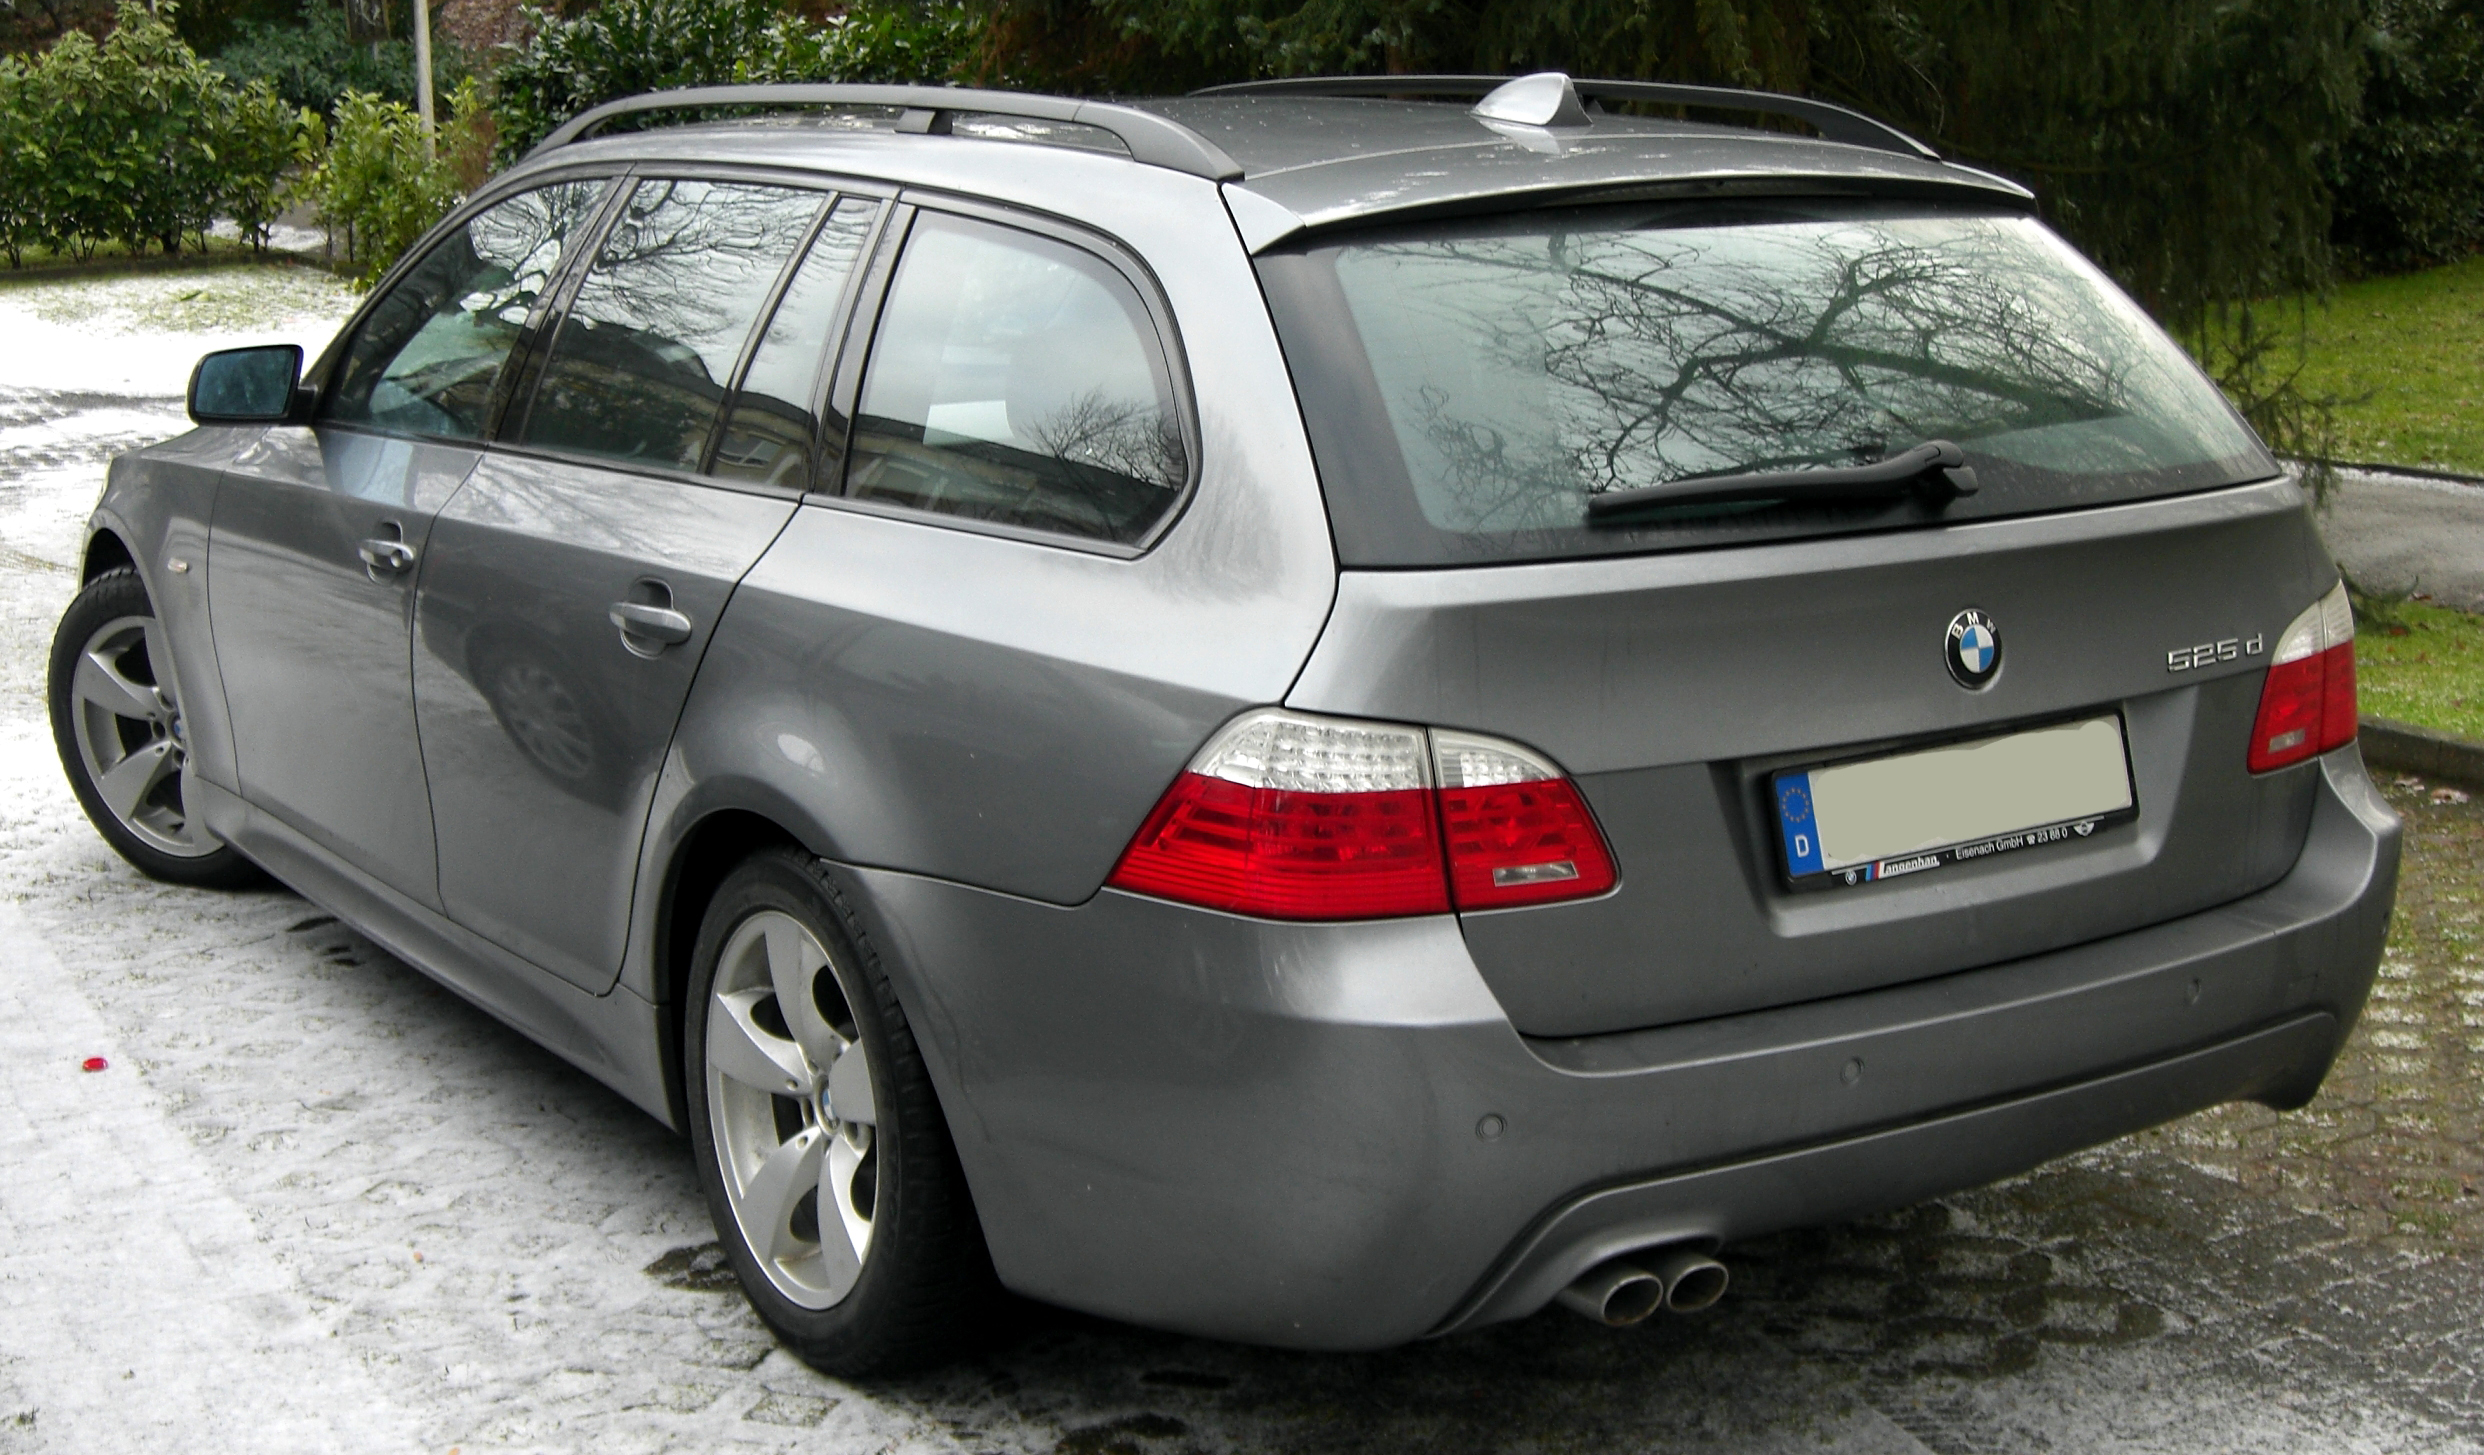 BMW 5 Series (E60) - Wikipedia